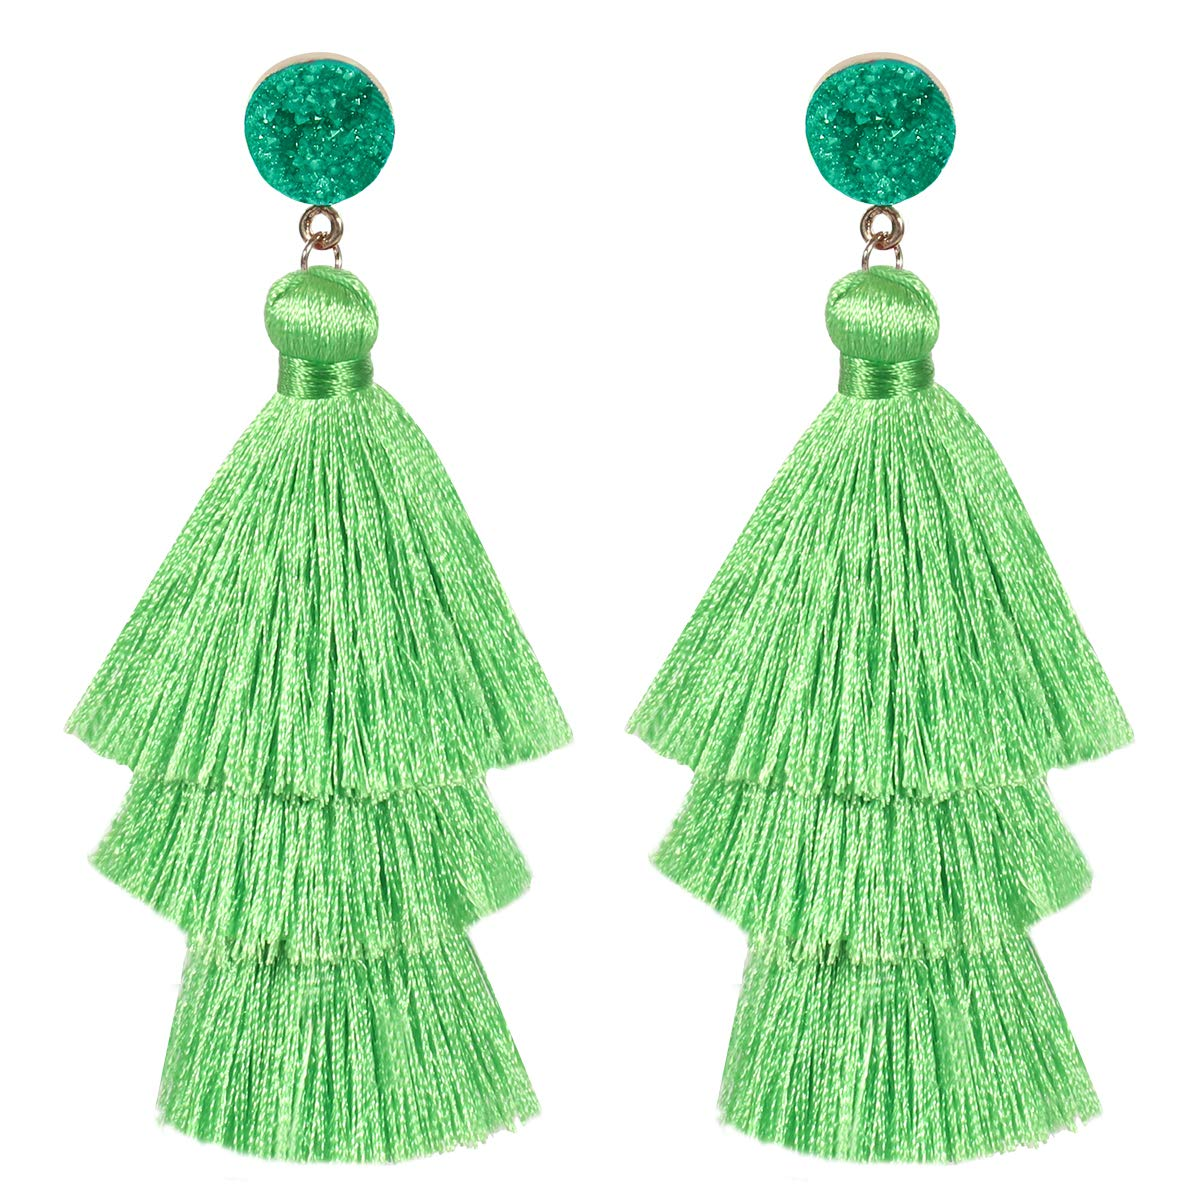 Tassel Earrings for Women Girls Fashion Bohemian Dangle Drop Colorful Layered Tiered fringe Druzy Stud Holiday Gifts